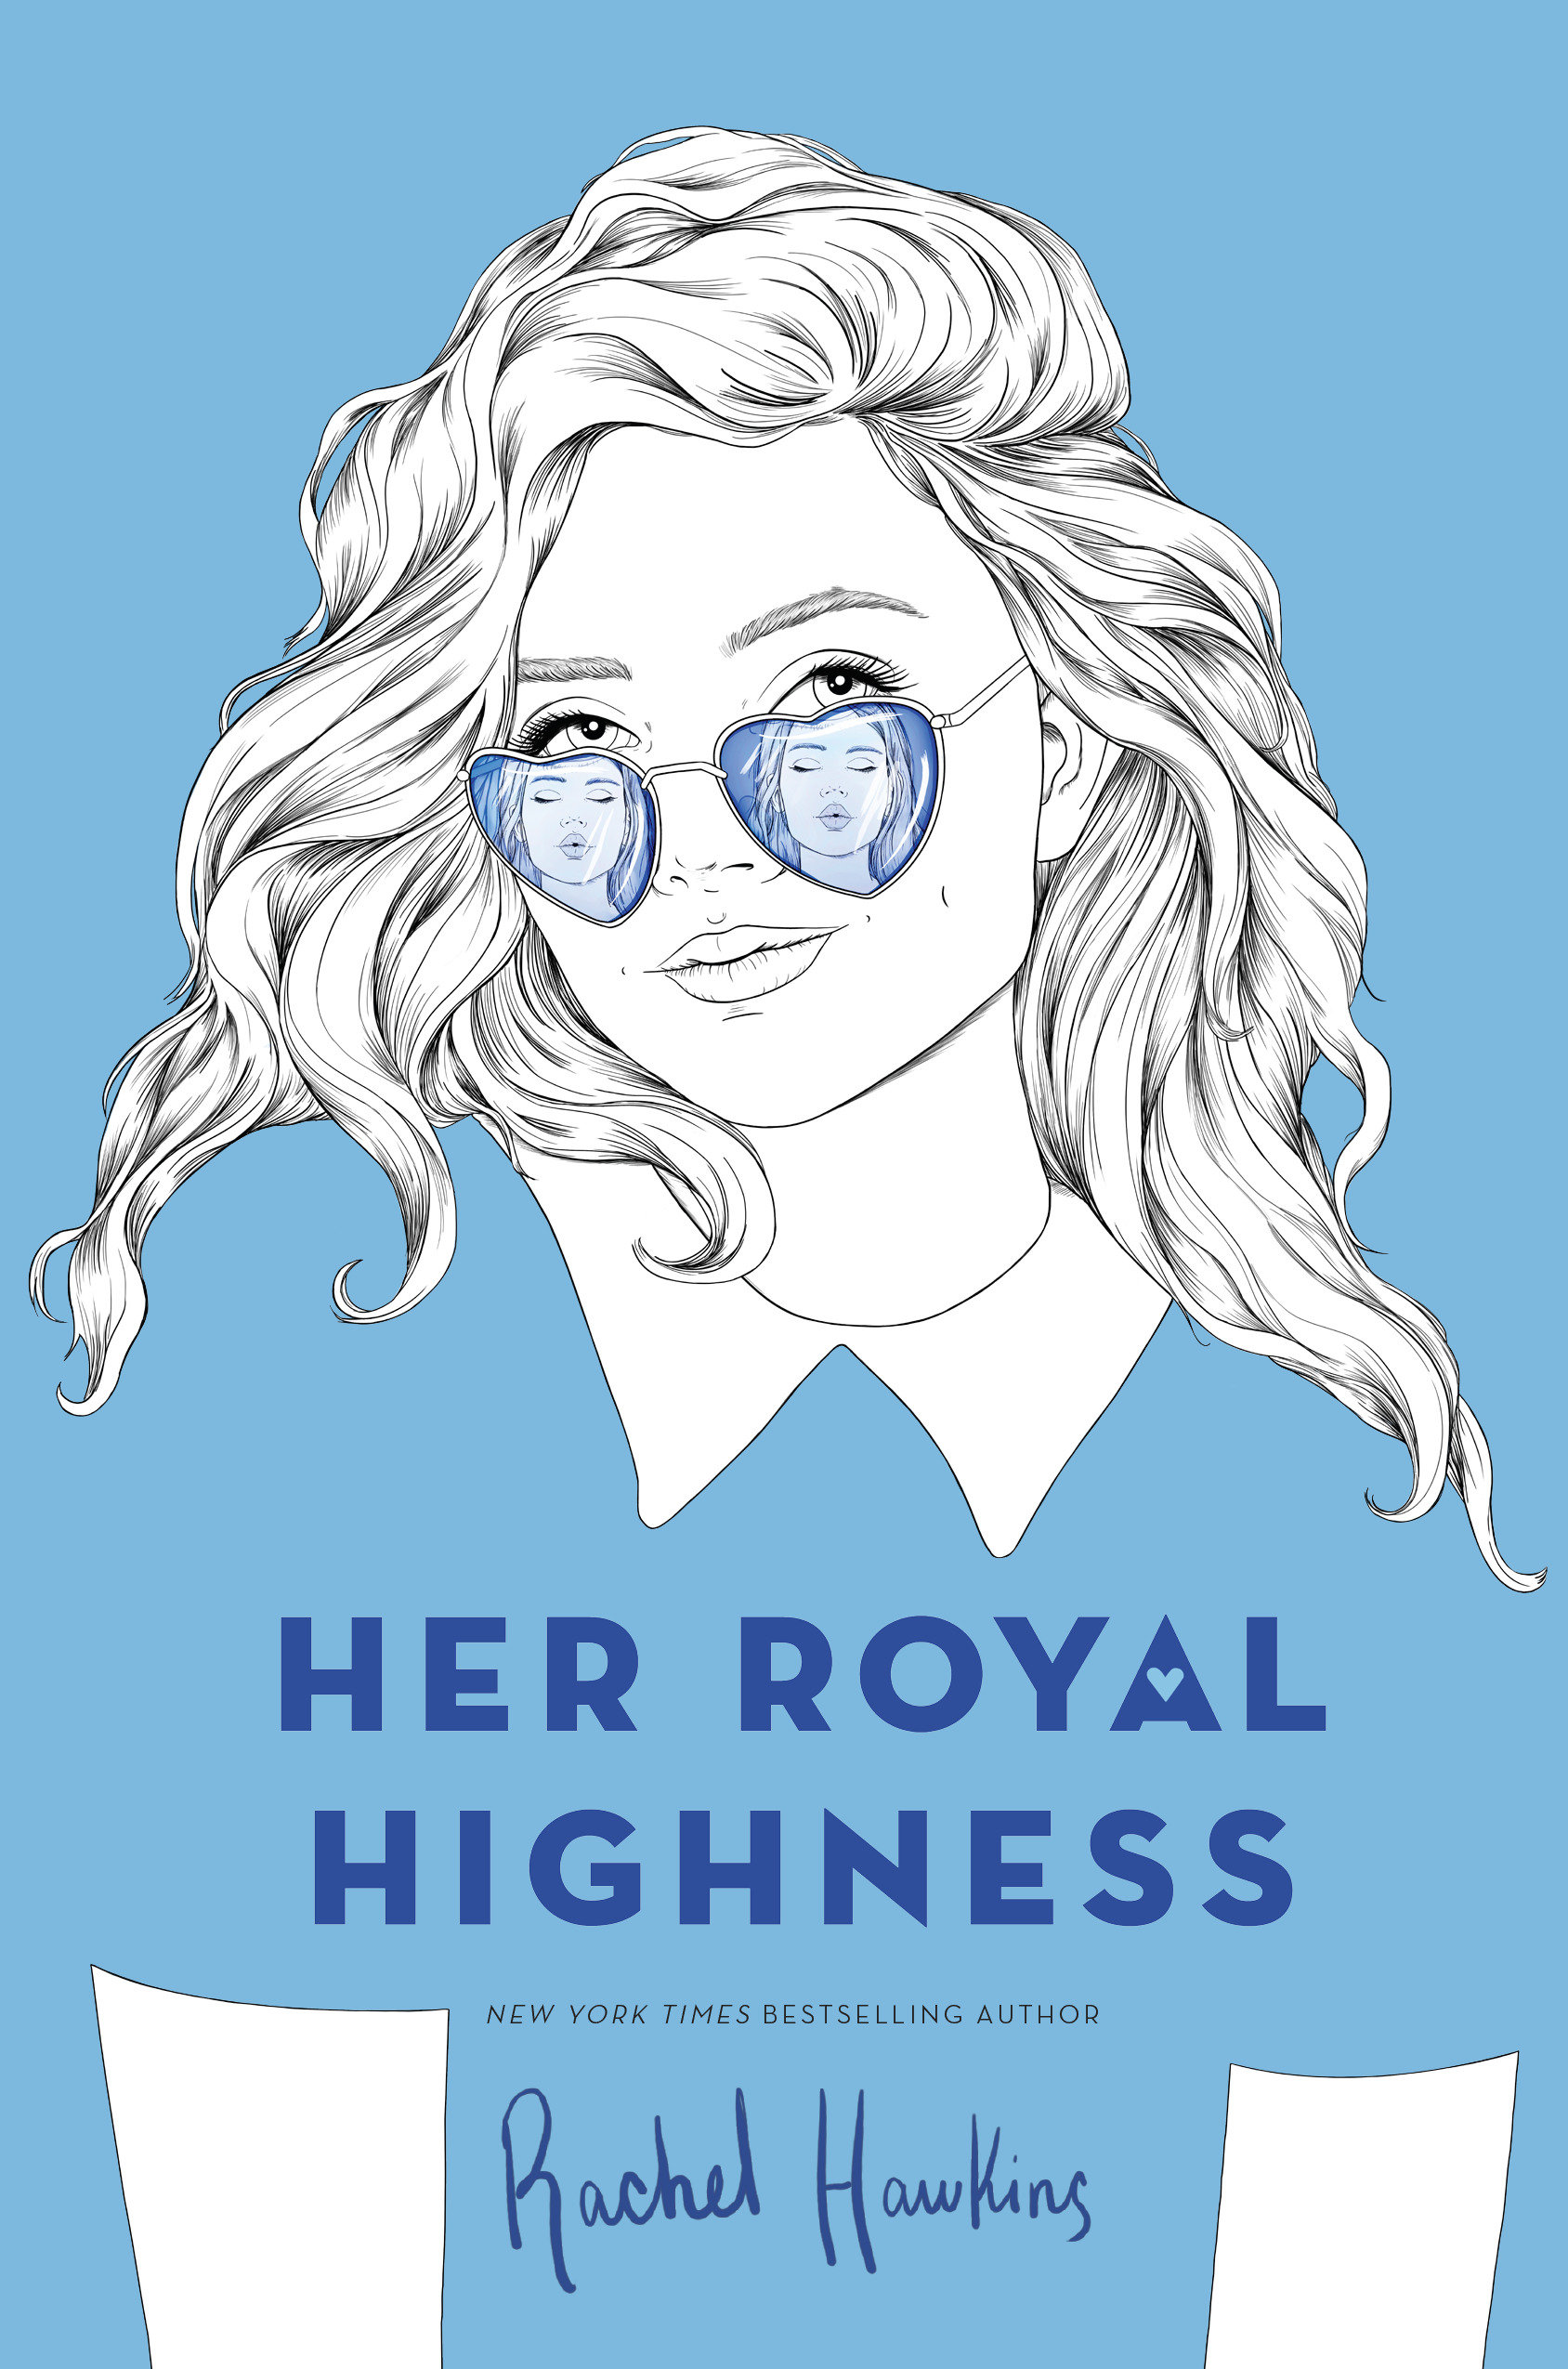 Her royal highness cover image